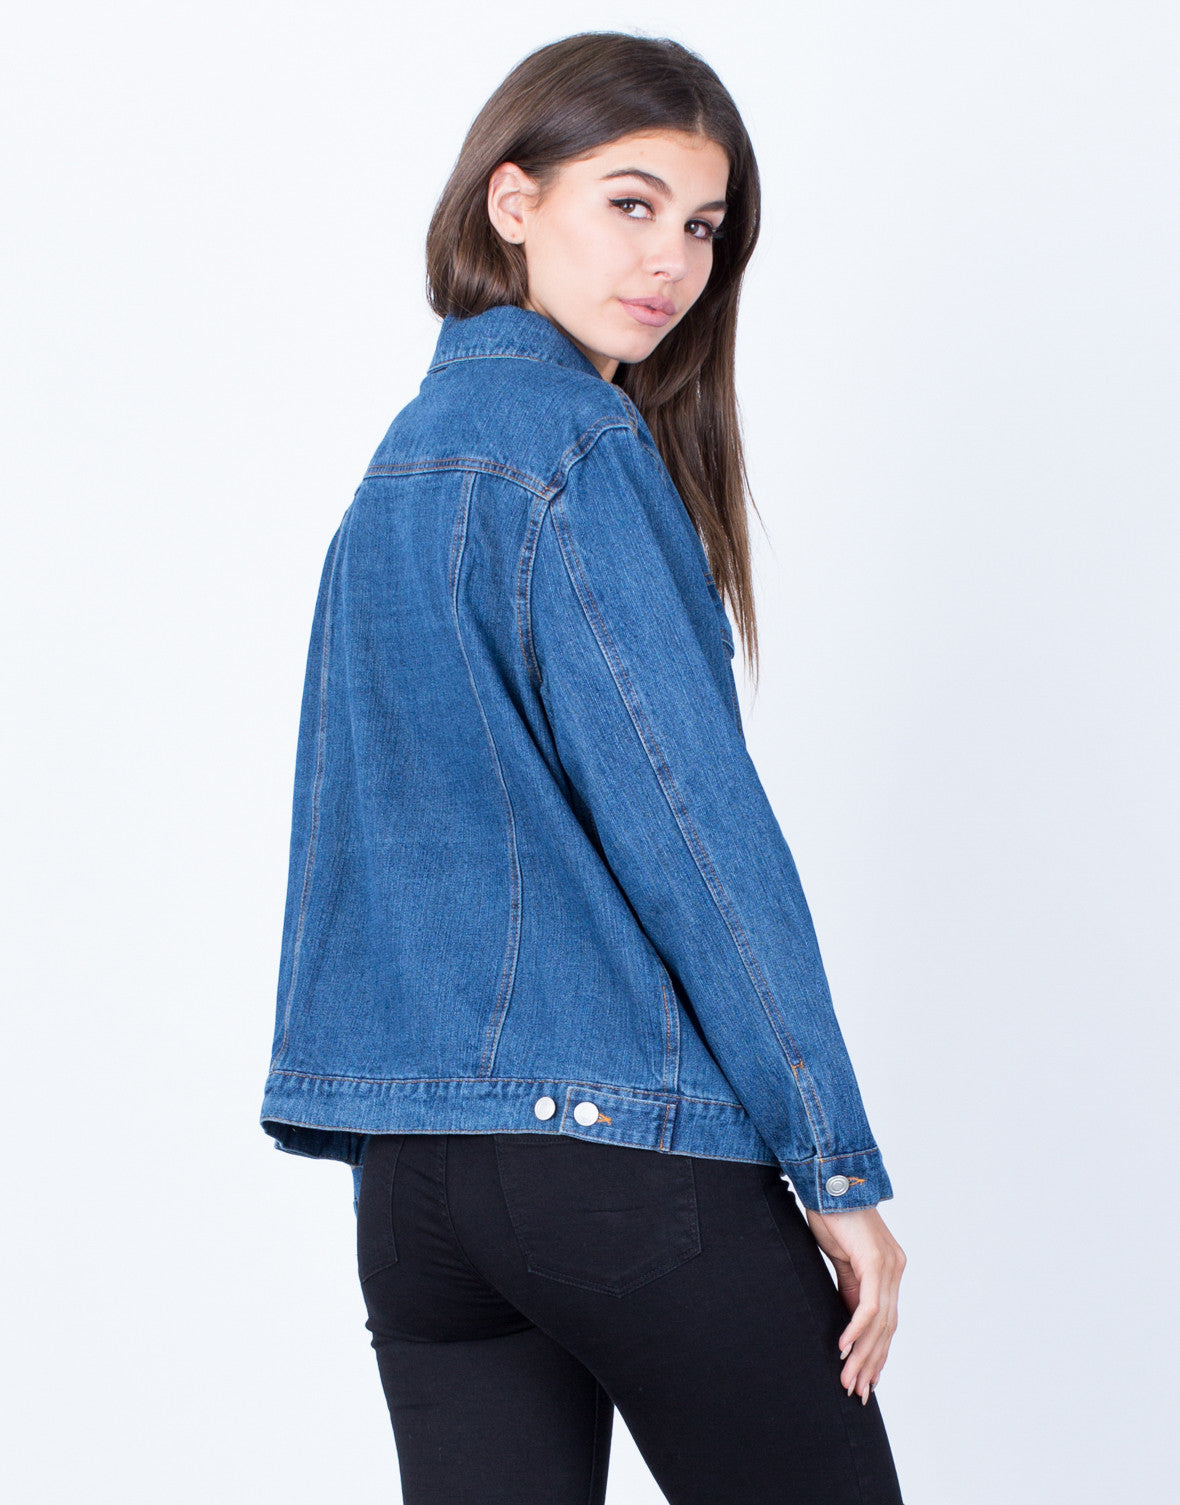 Back View of Classic Blue Denim Jacket